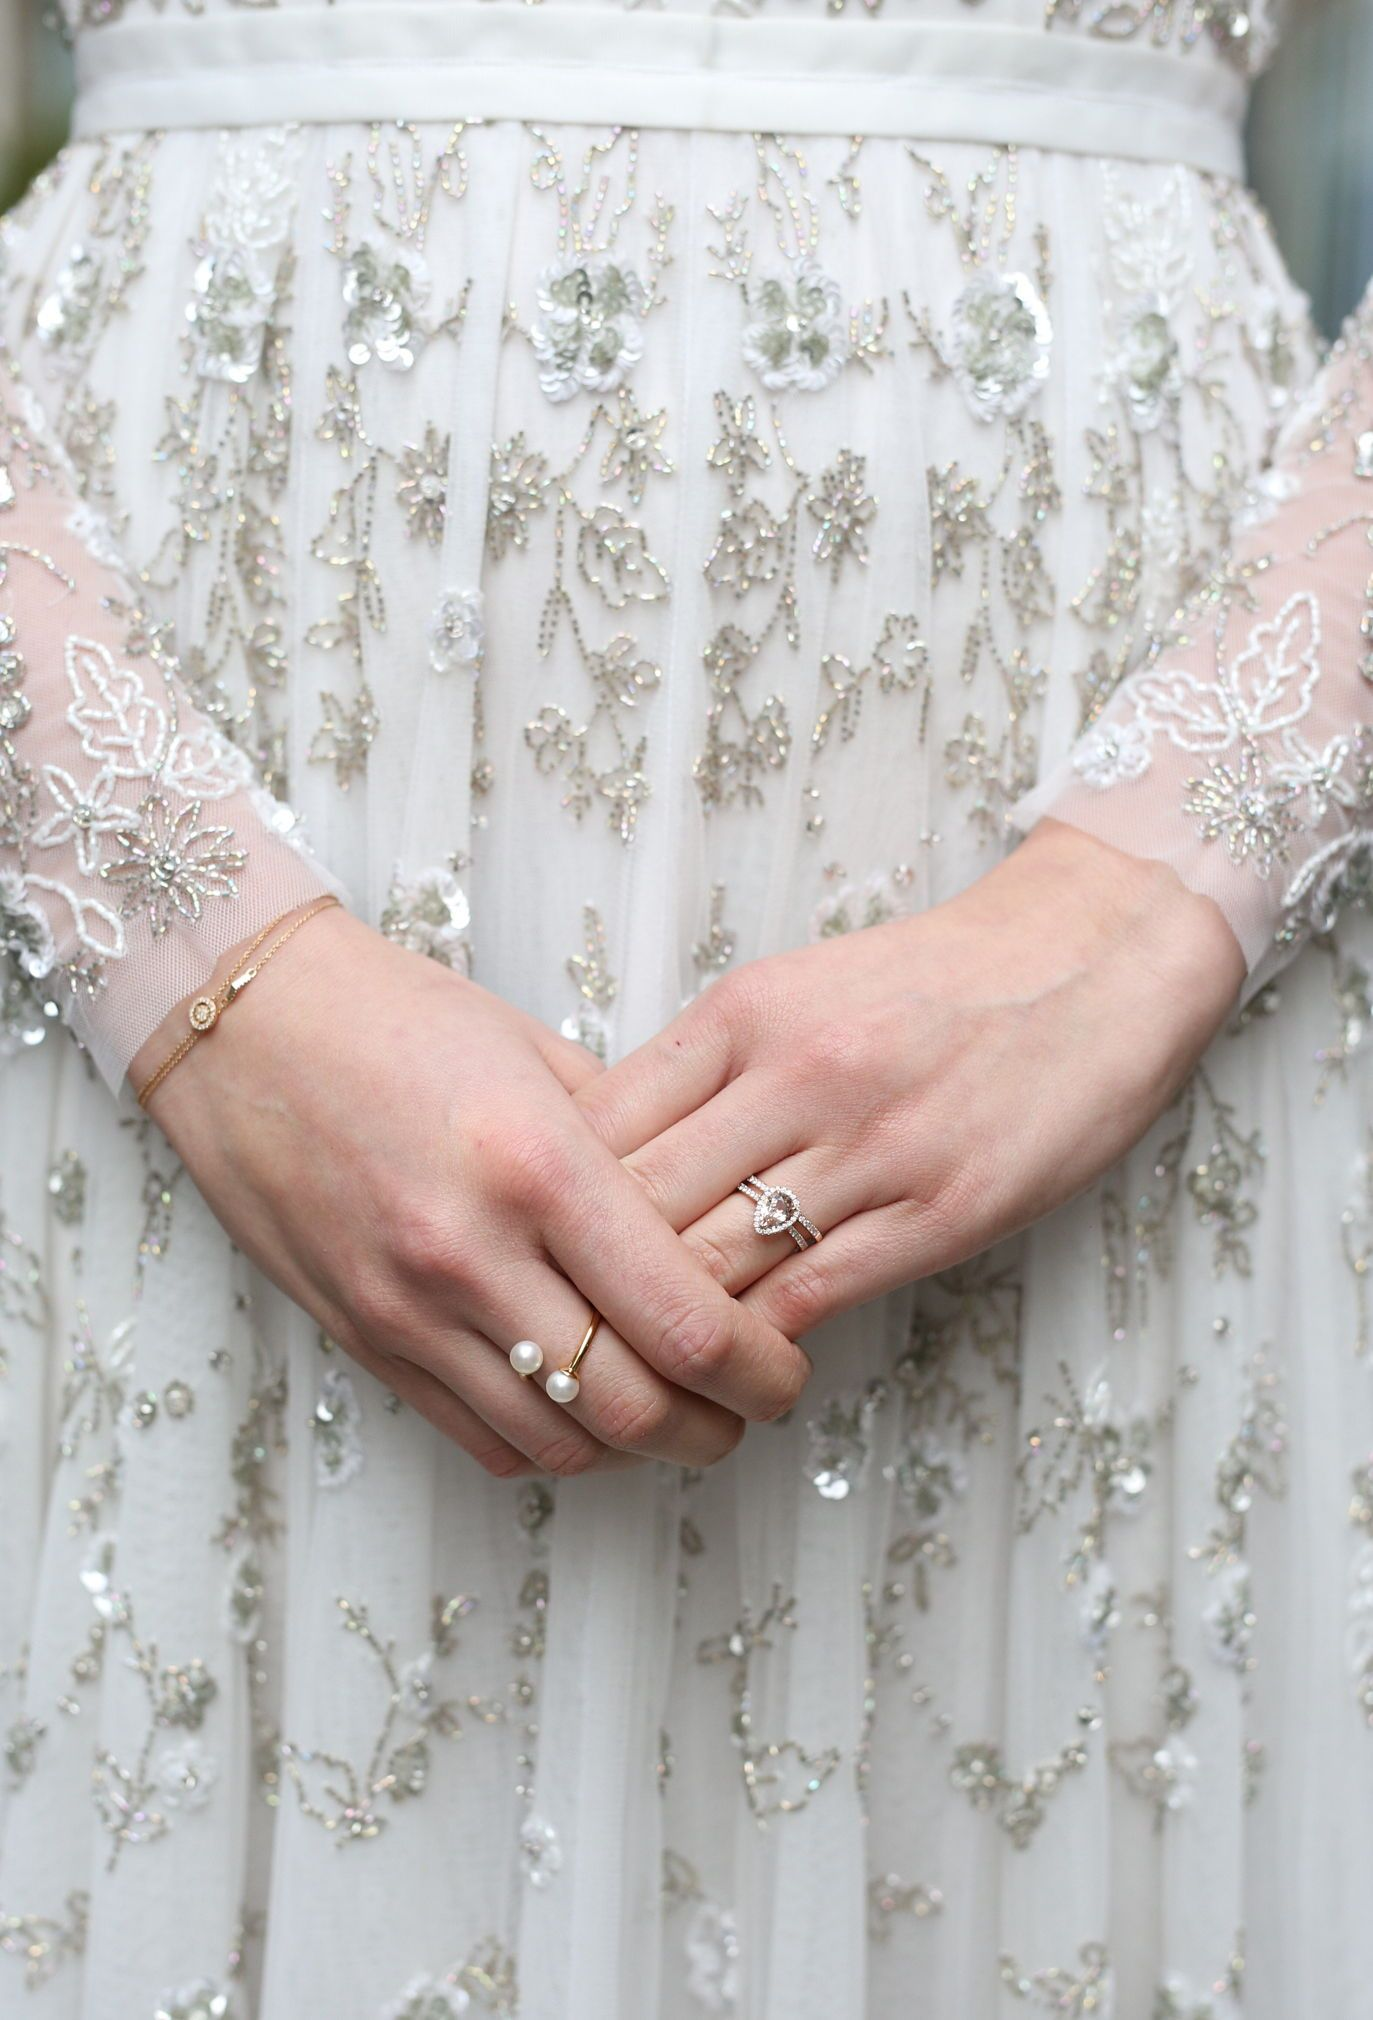 Bridal details with jewellery from astley clarke as the perfect